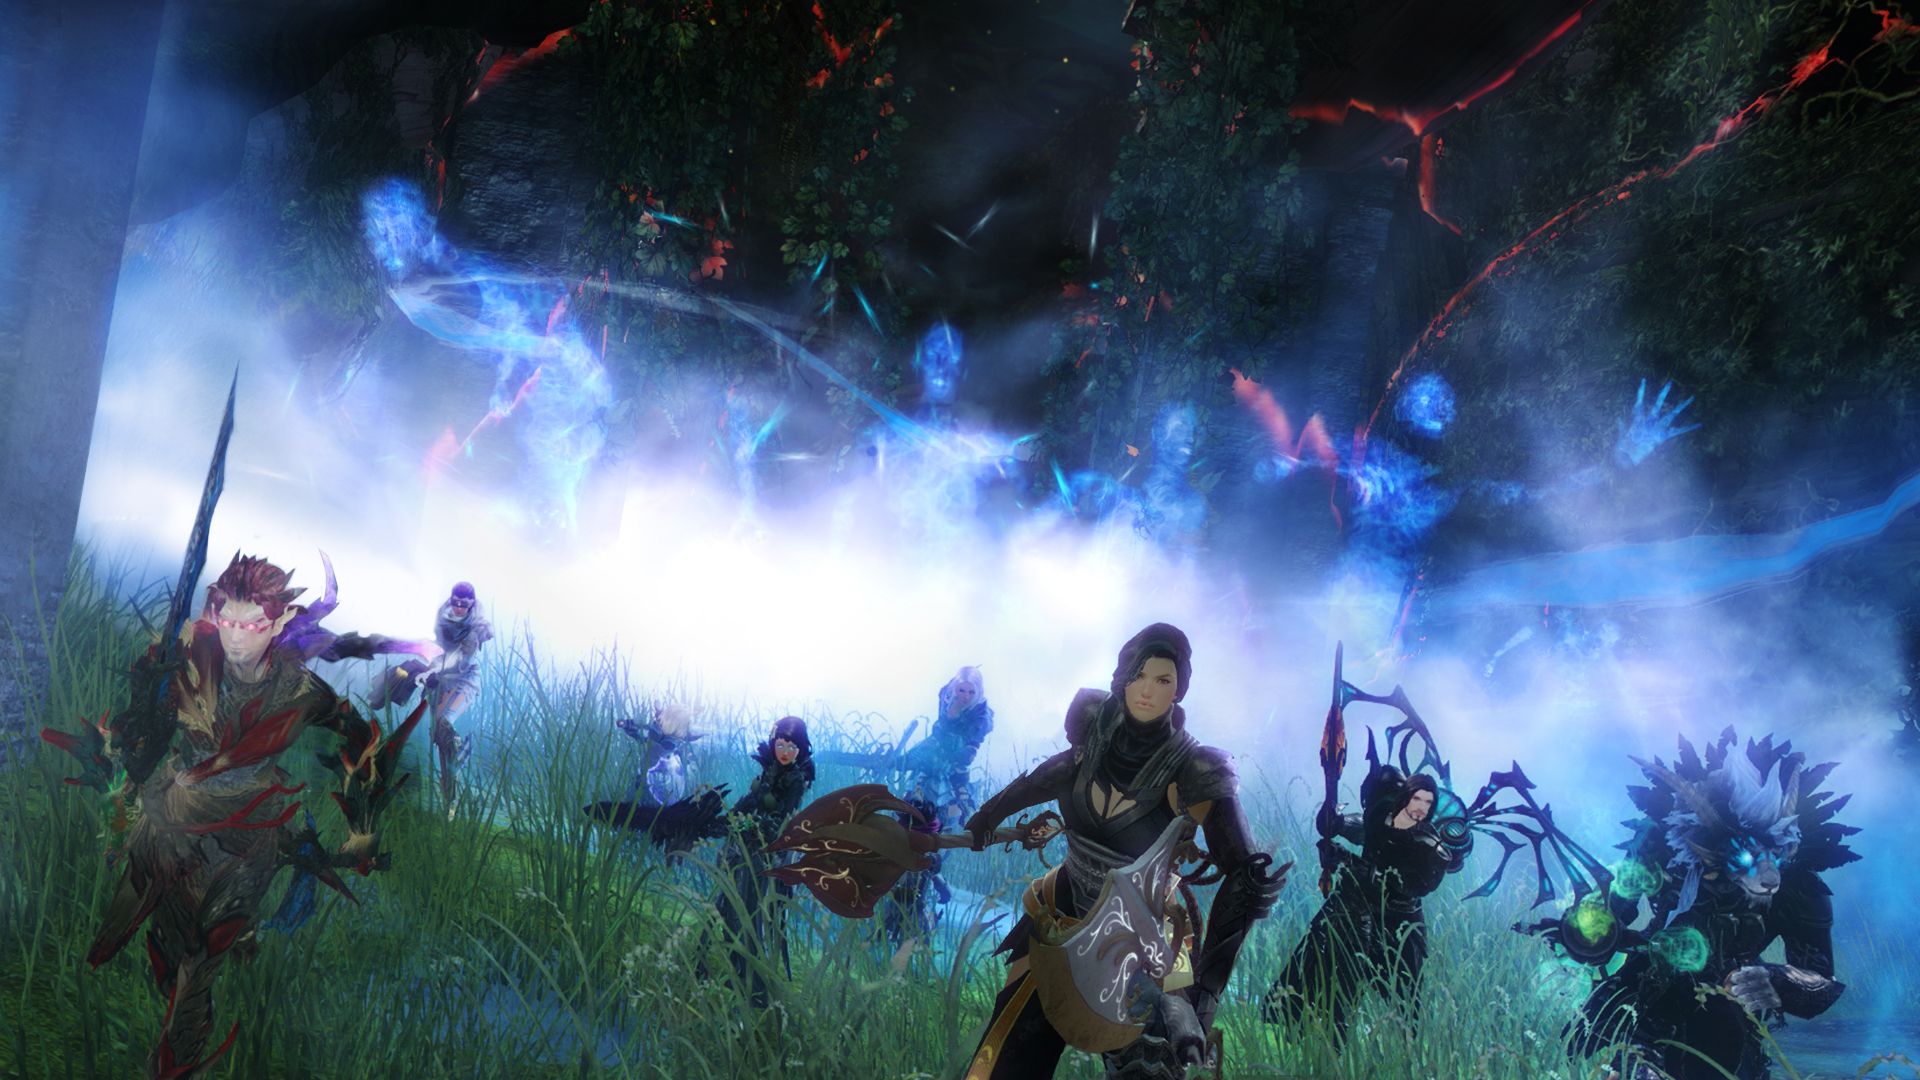 gw2hot_08-2015_spirit_wall